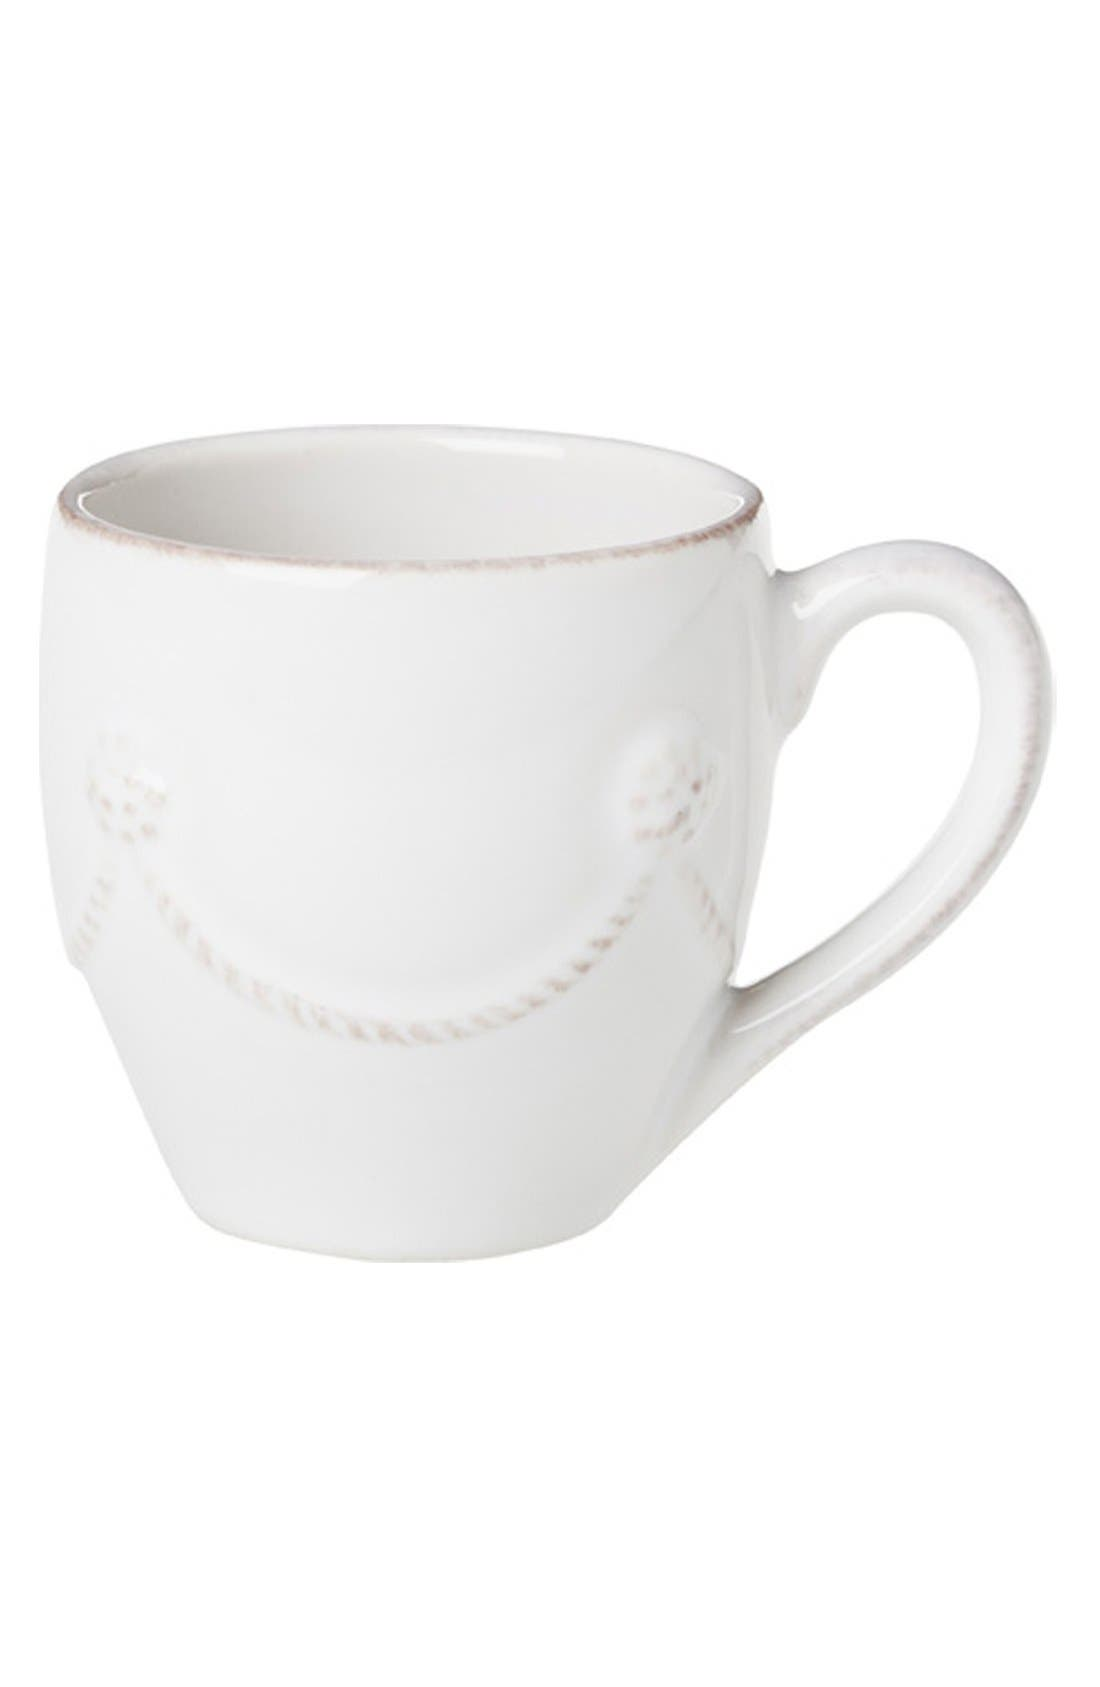 'Berry and Thread' Ceramic Demitasse Coffee Mug,                         Main,                         color, 100